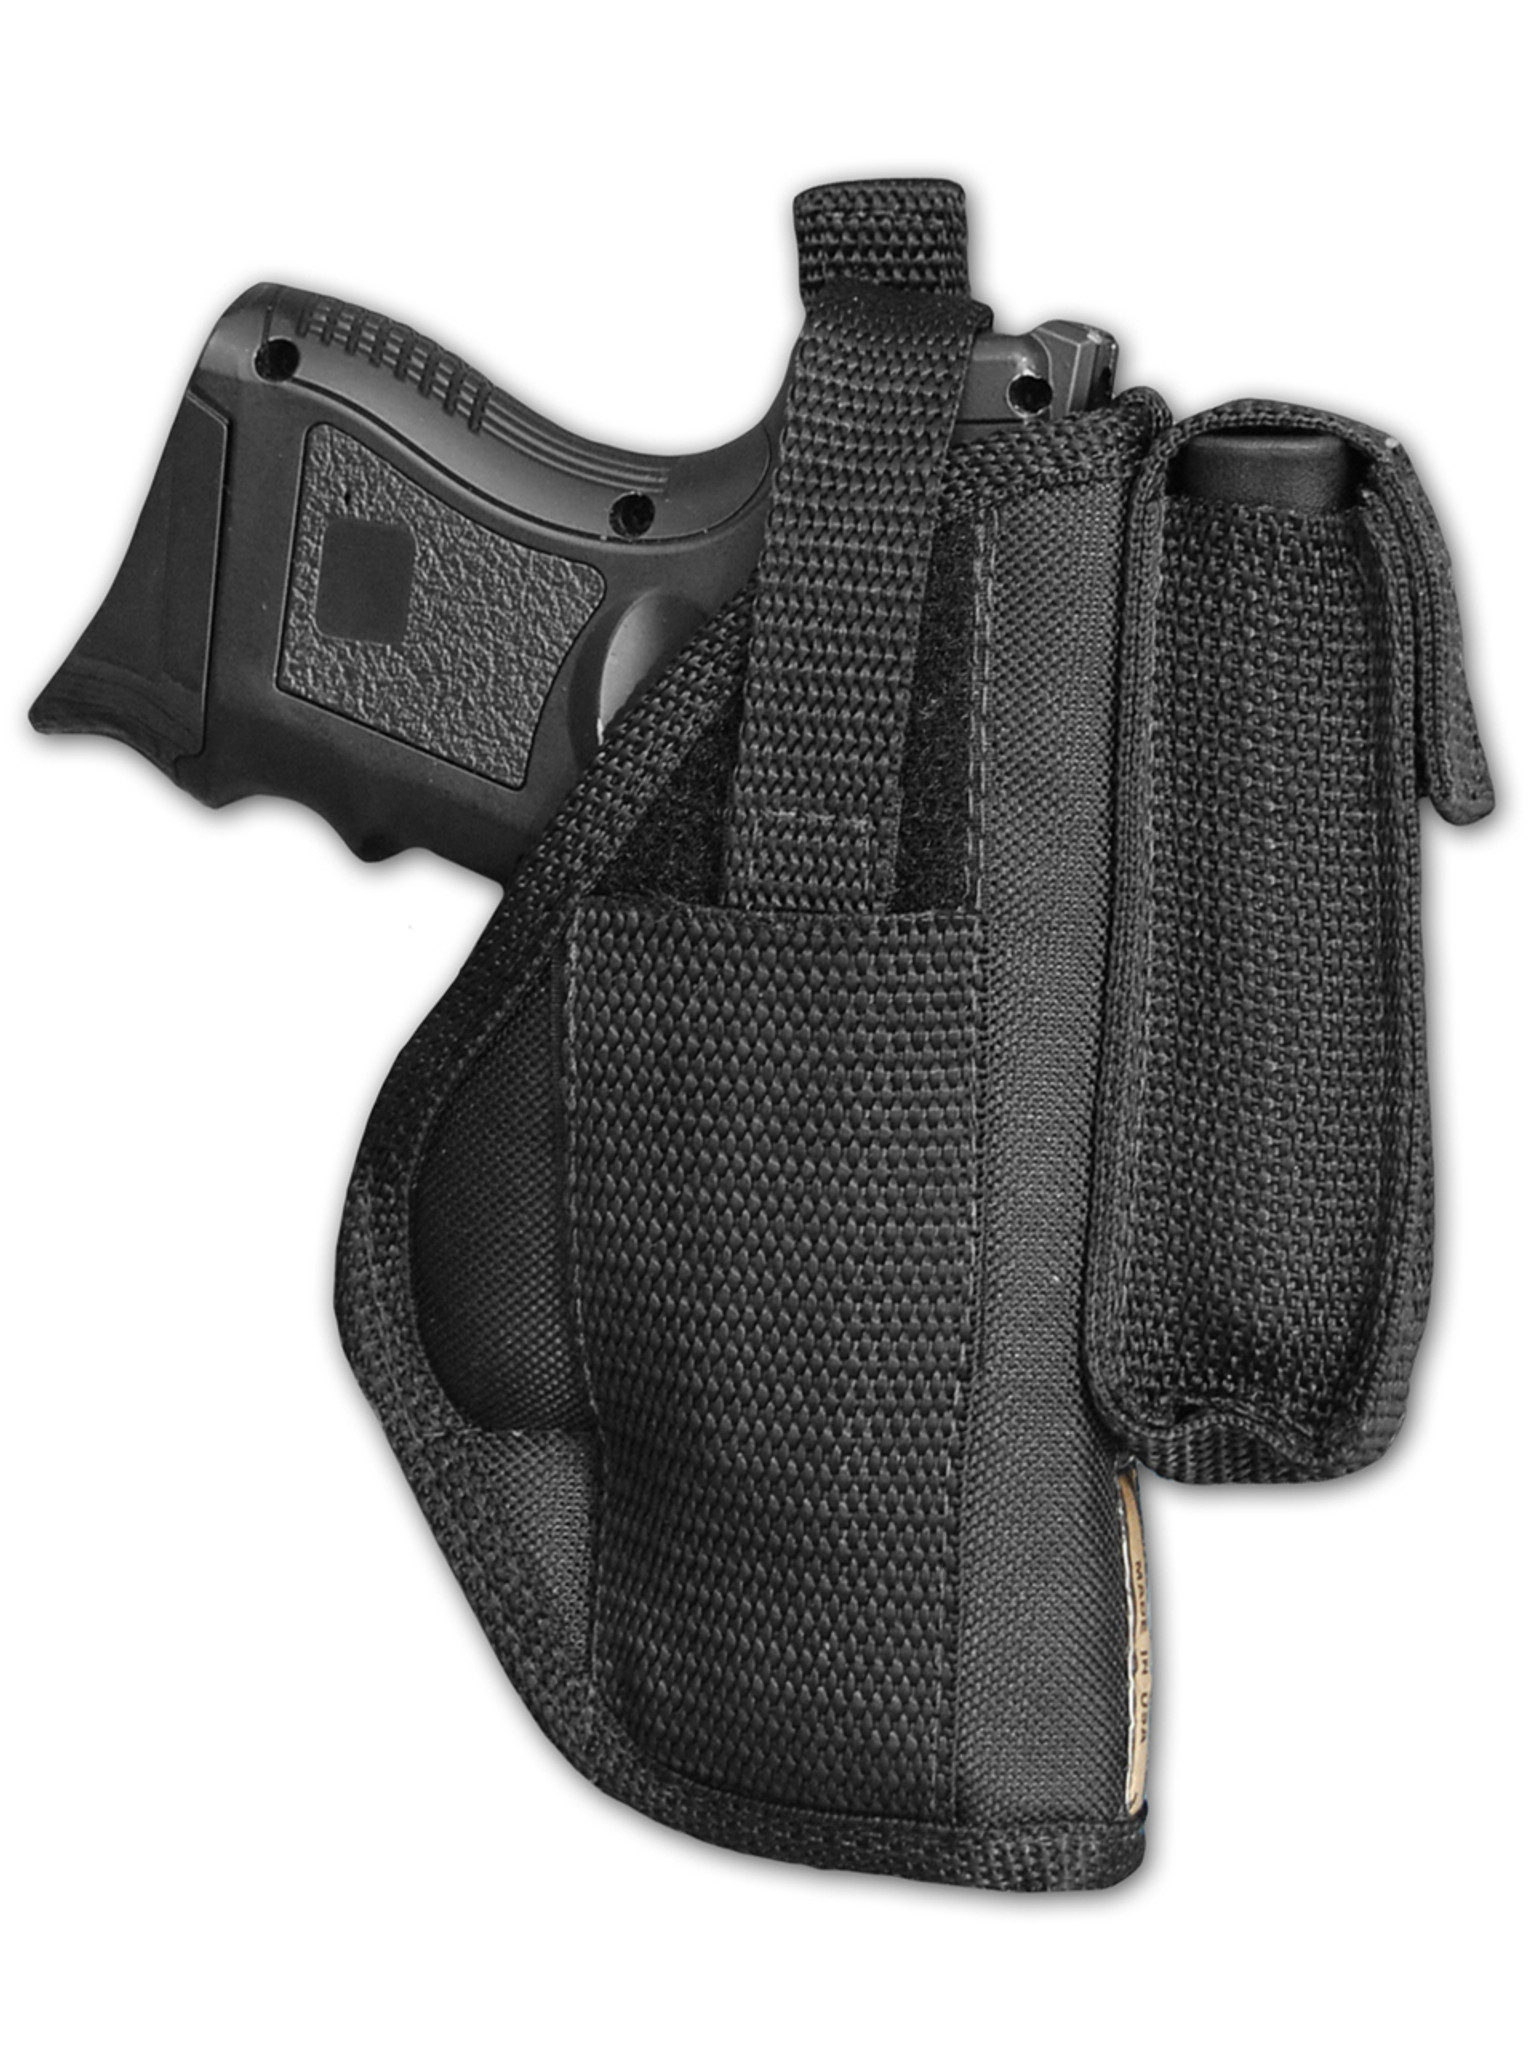 Belt Holster with Magazine Pouch for Compact 9mm 40 45